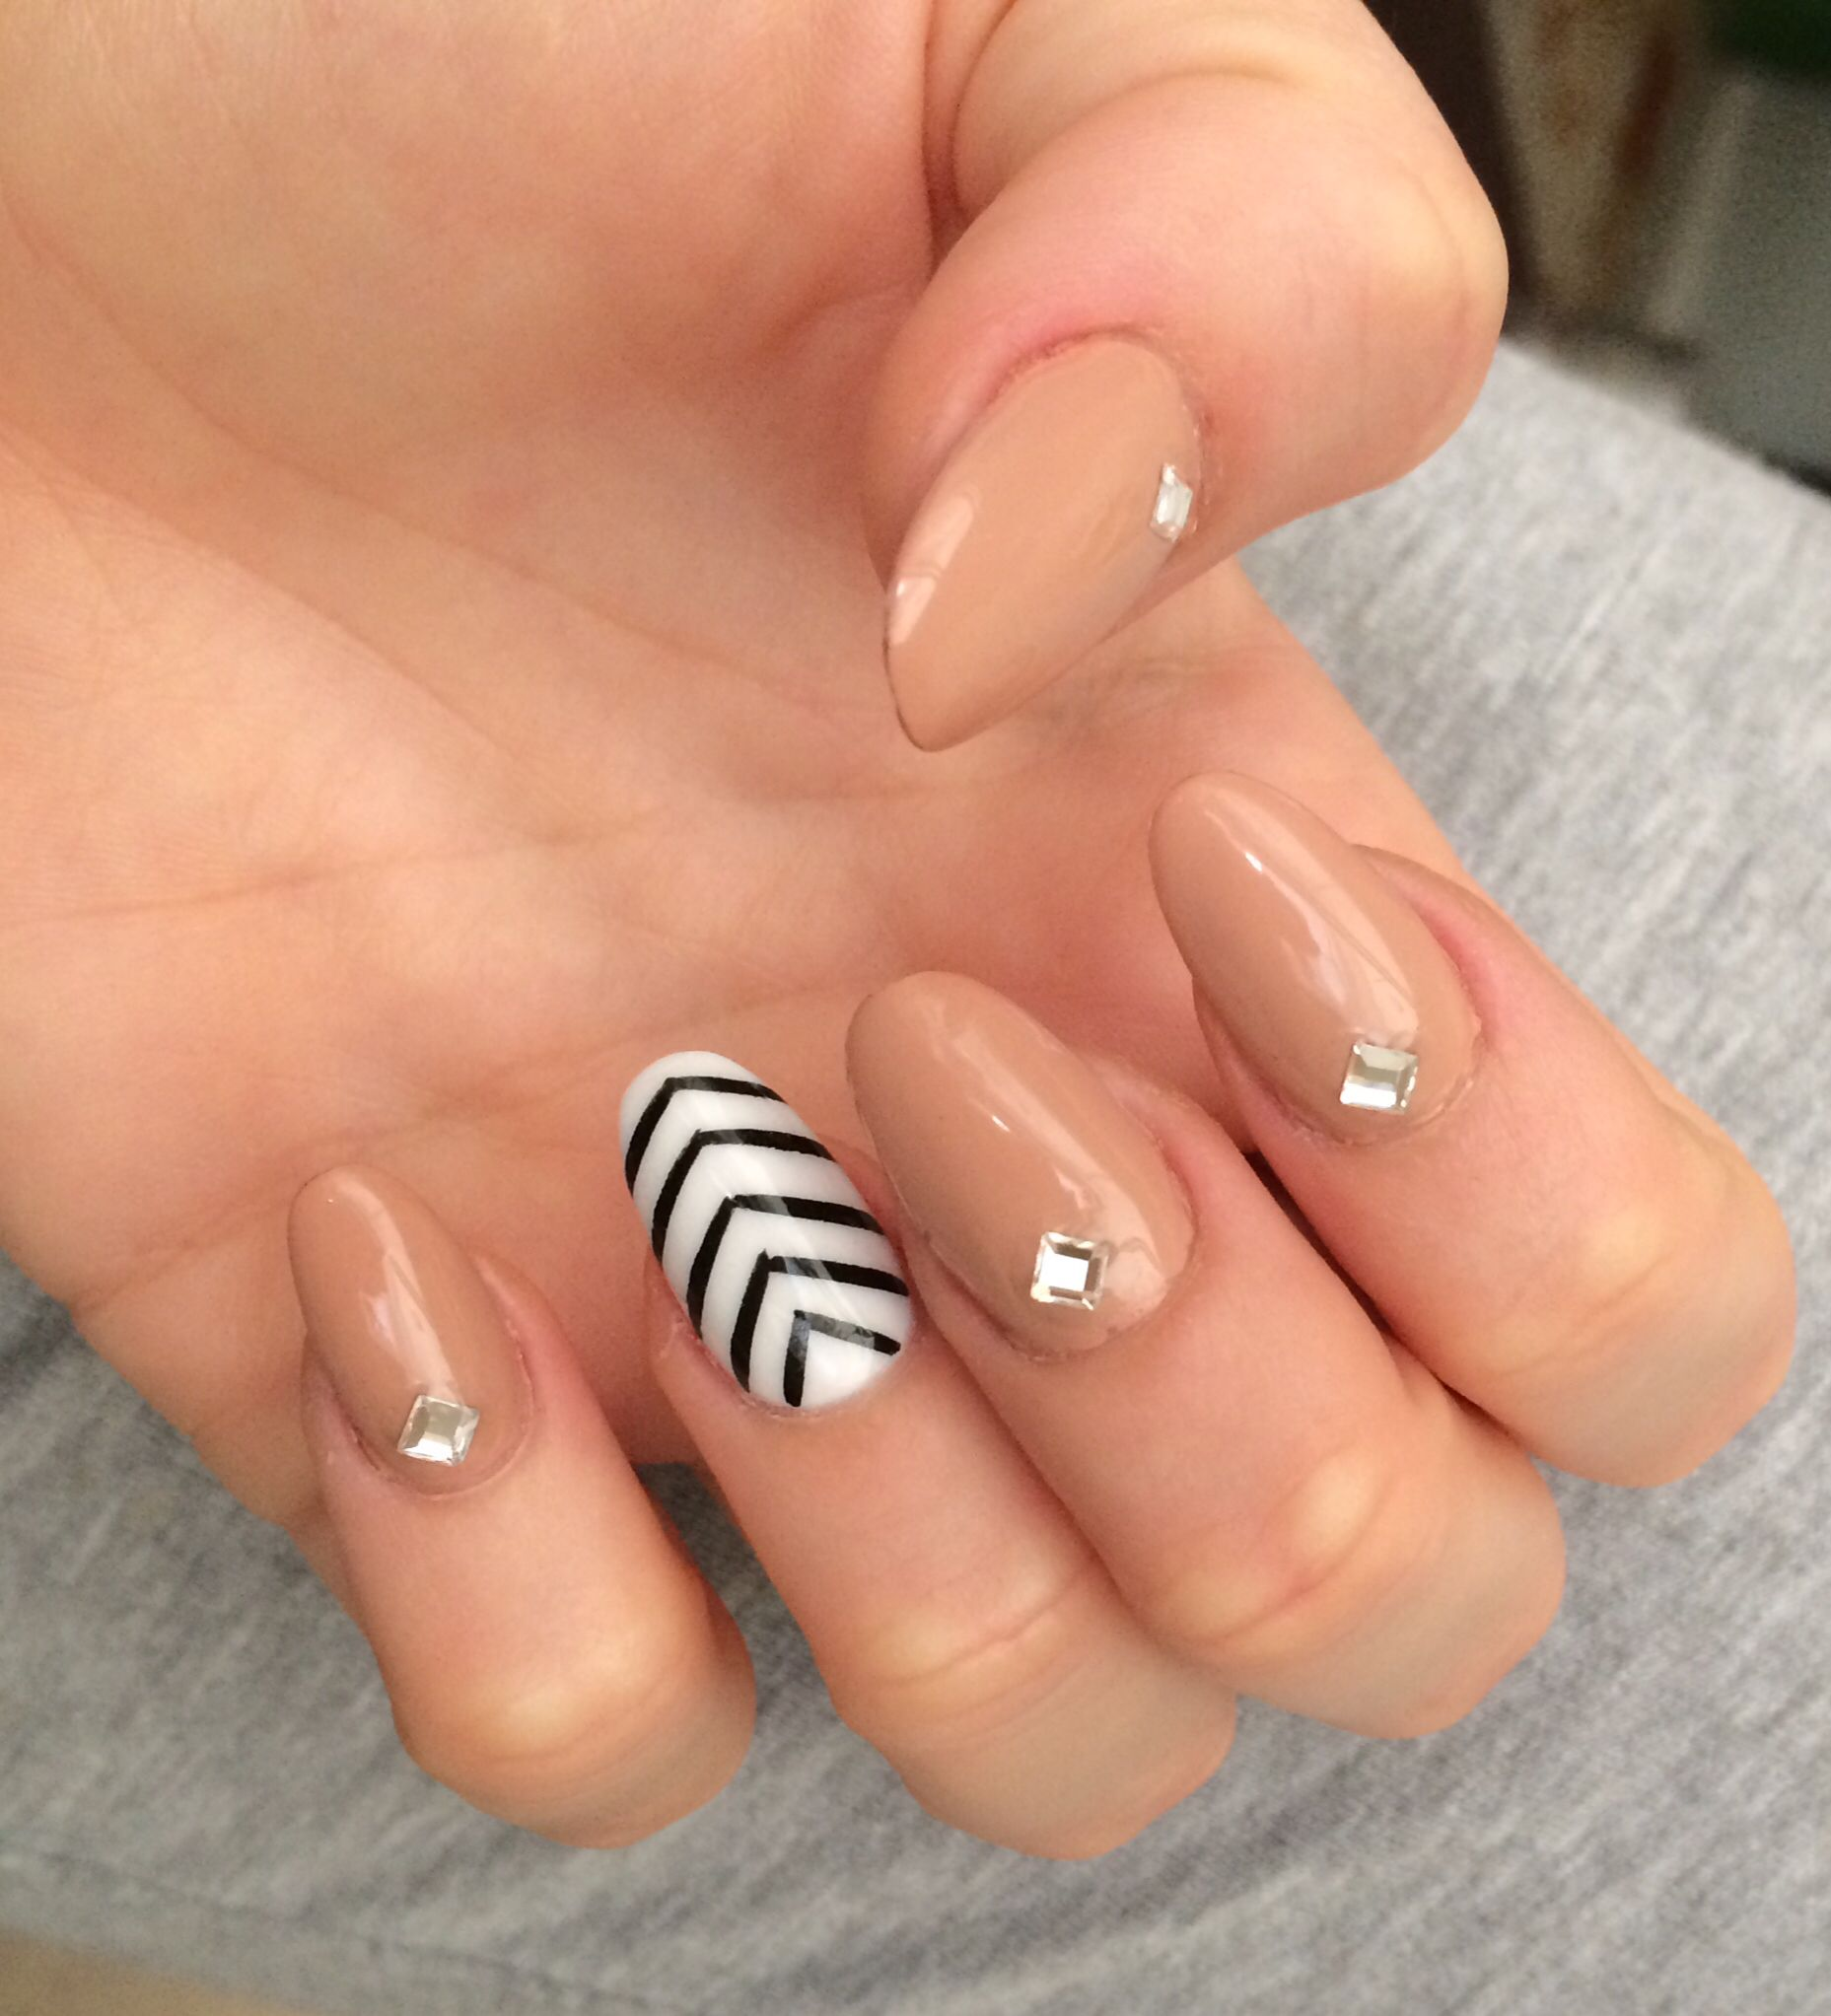 Oval Nails Acrylic Nail Design With Diamonds Beige Nails Nail